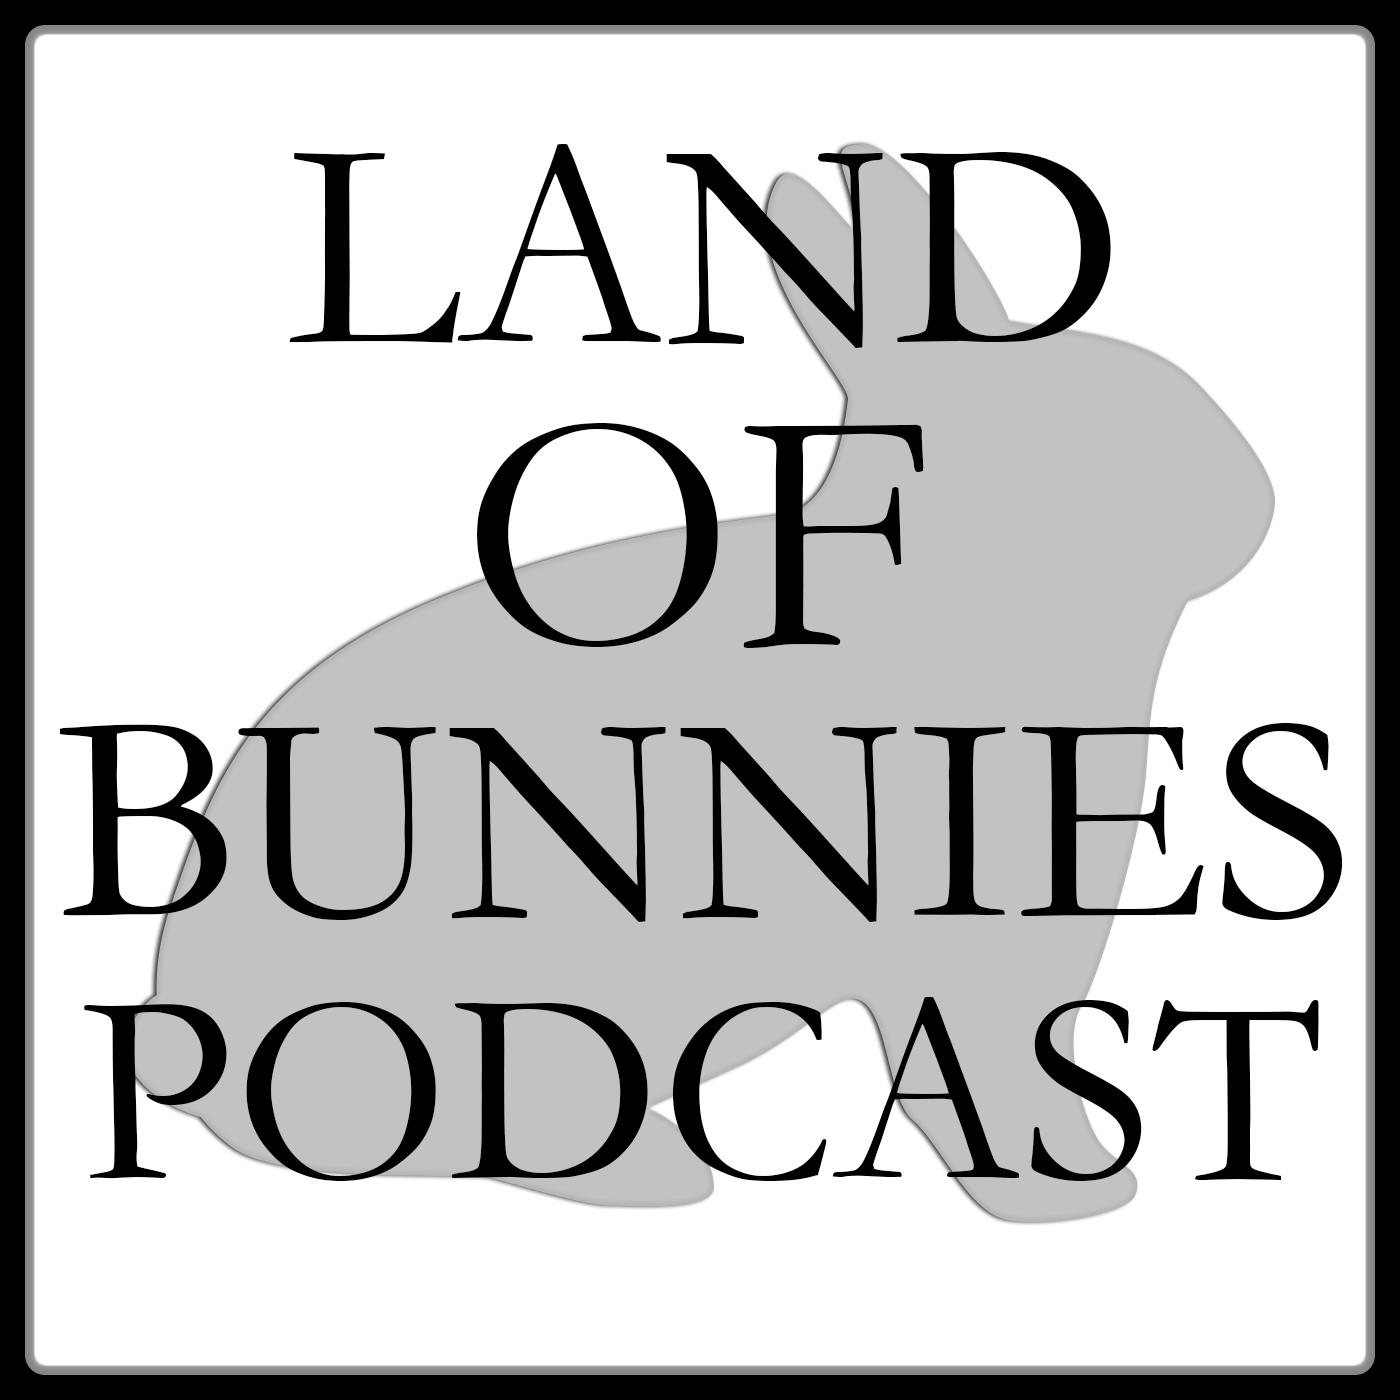 Episode 48 – Manifests From My Face - The Land of Bunnies Podcast